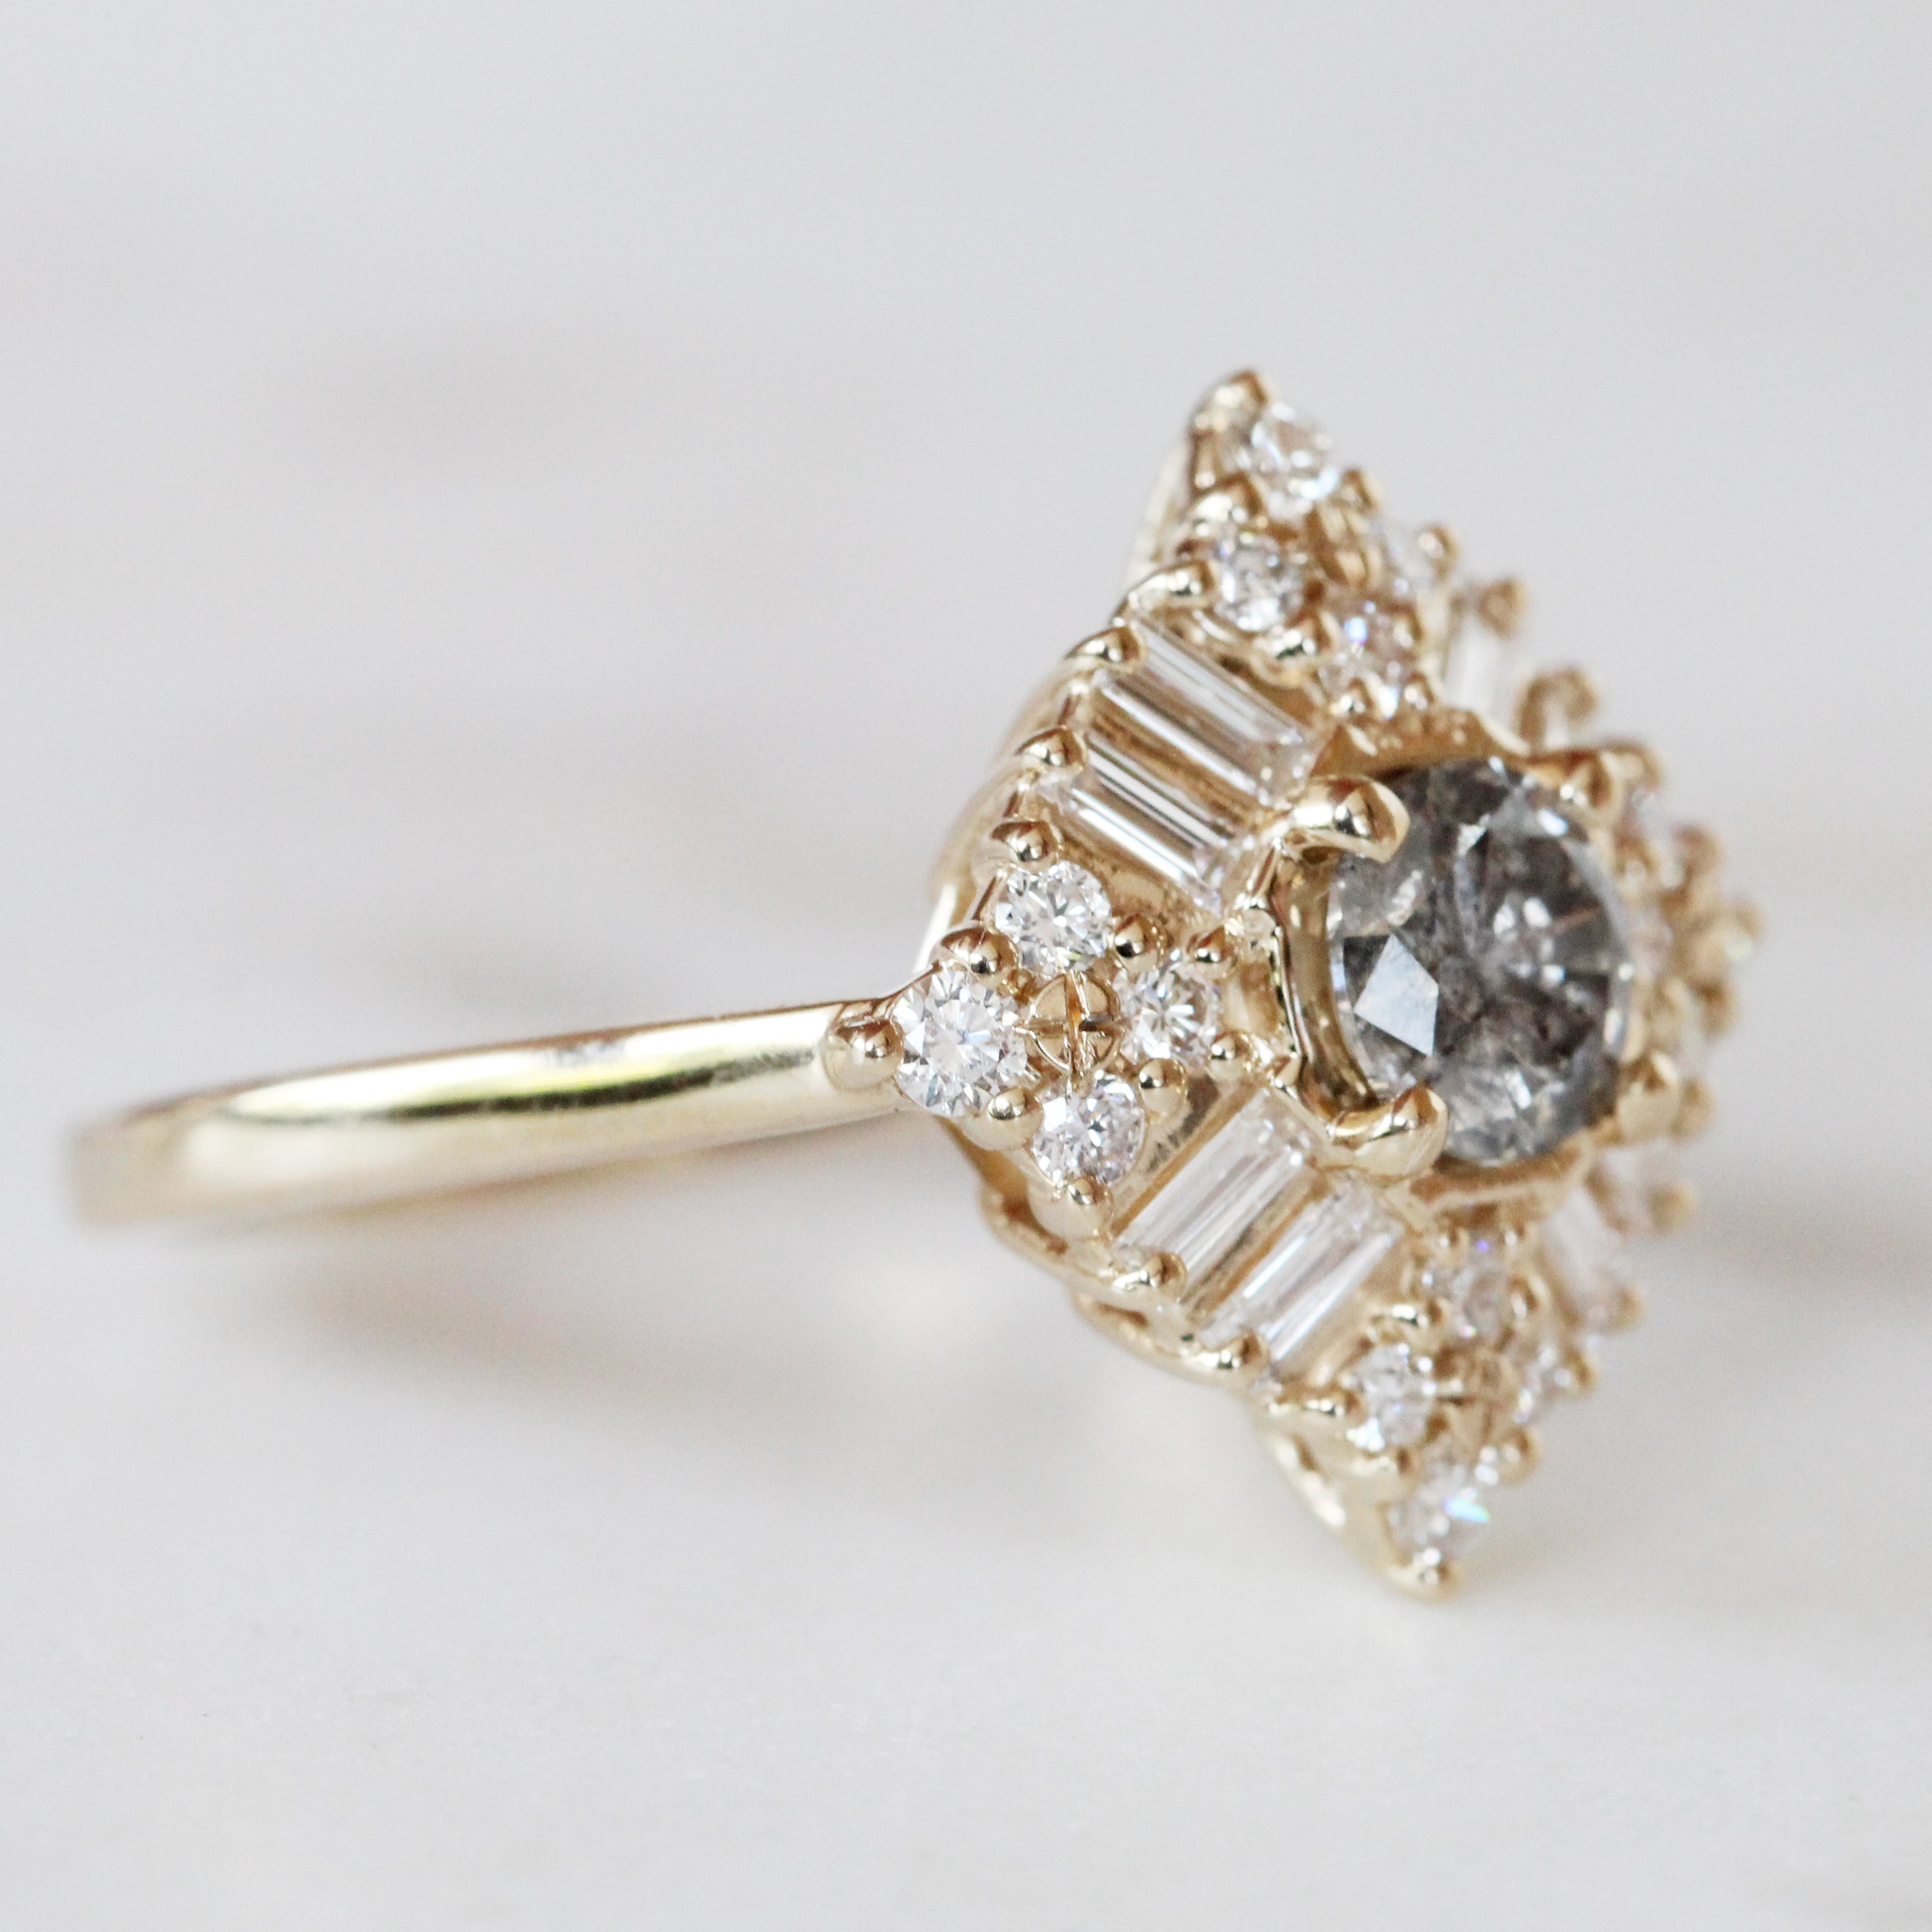 Winnifred Ring with a Celestial Round Diamond and Halo in 14k Yellow Gold - Ready to Size and Ship - Salt & Pepper Celestial Diamond Engagement Rings and Wedding Bands  by Midwinter Co.